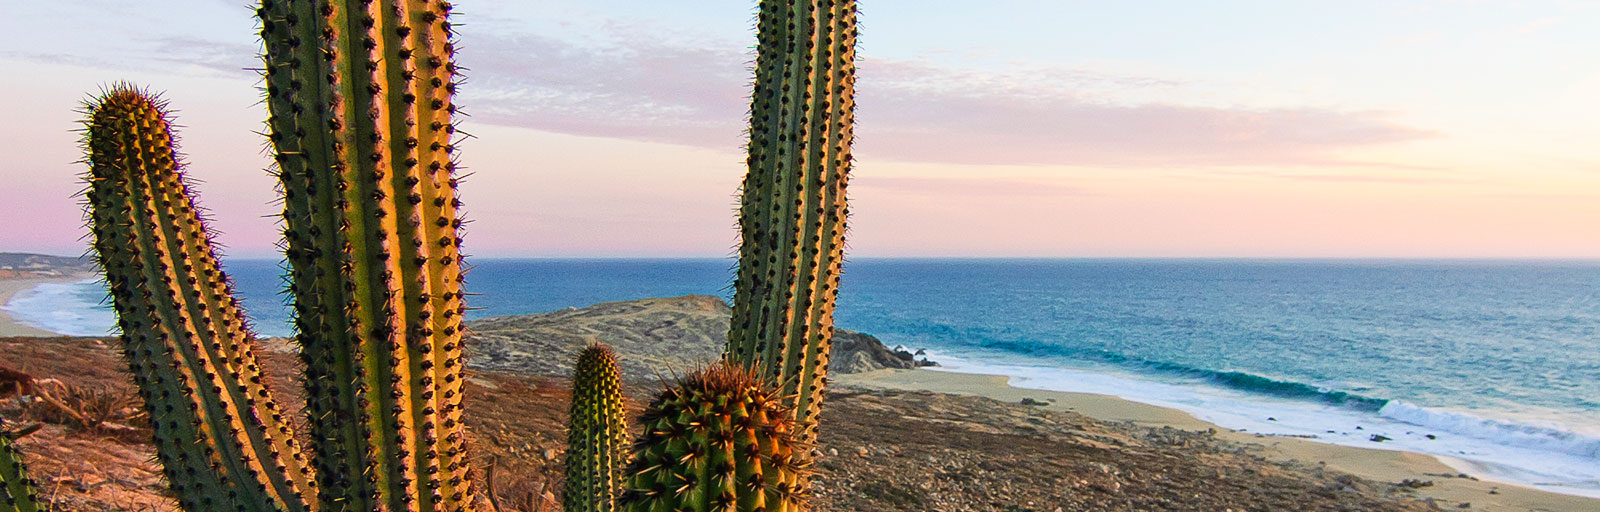 Hiking & Yoga Retreat in Mexico: Pitaya Cactus and Ocean View at Sunset